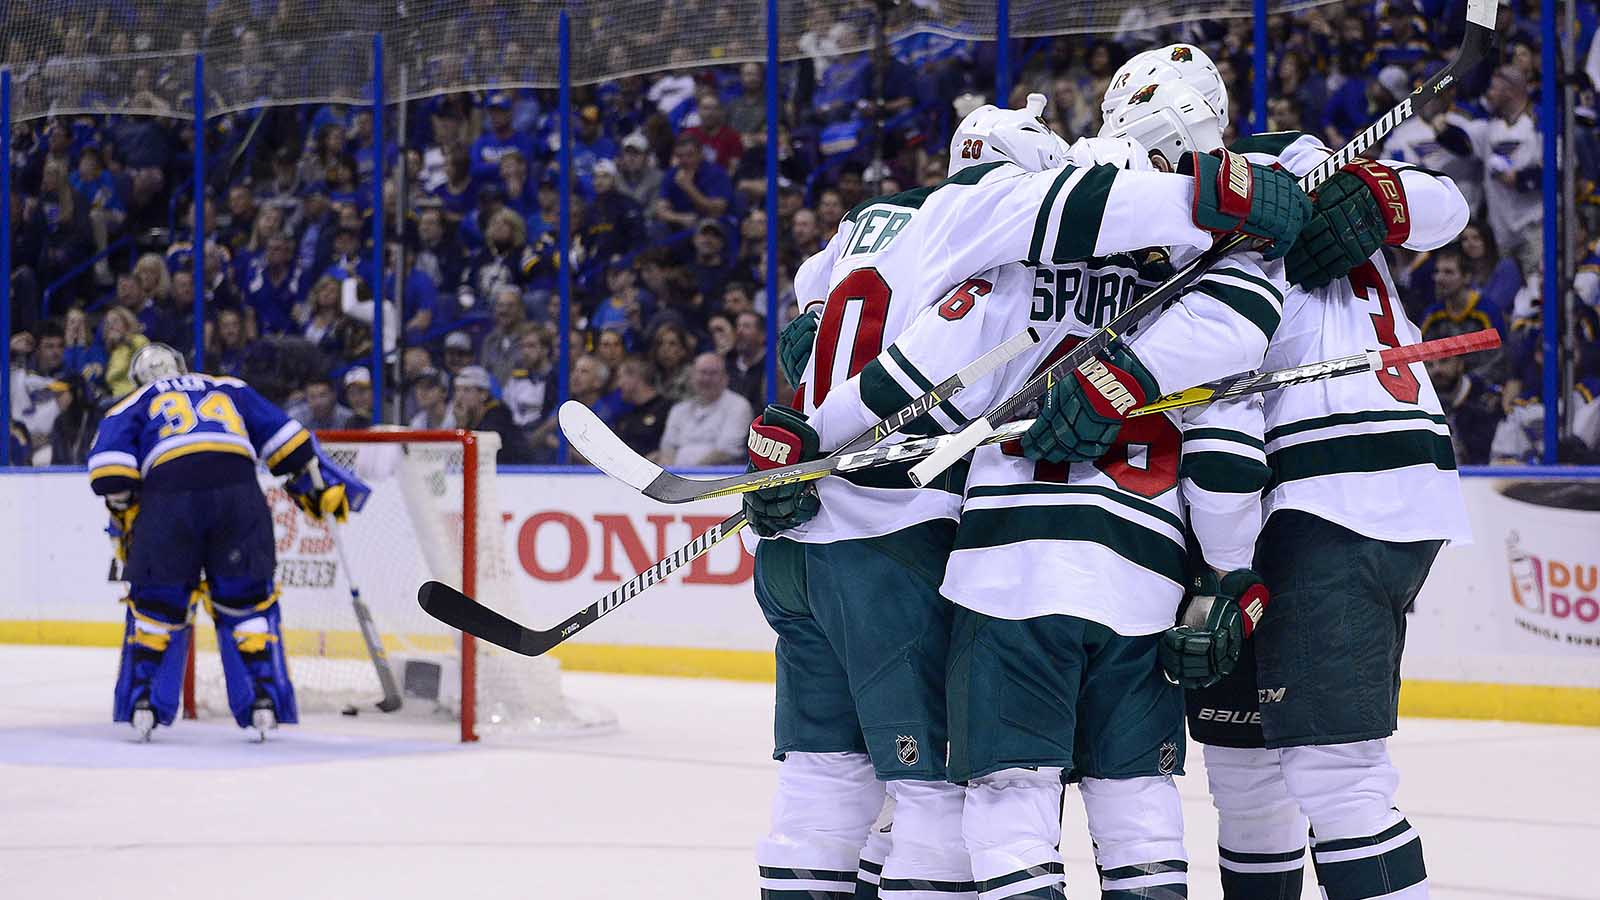 Apr 19, 2017; St. Louis, MO, USA; Minnesota Wild center Charlie Coyle (3) celebrates with teammates after scoring against St. Louis Blues goalie Jake Allen (34) during the first period in game four of the first round of the 2017 Stanley Cup Playoffs at Scottrade Center. Mandatory Credit: Jeff Curry-USA TODAY Sports